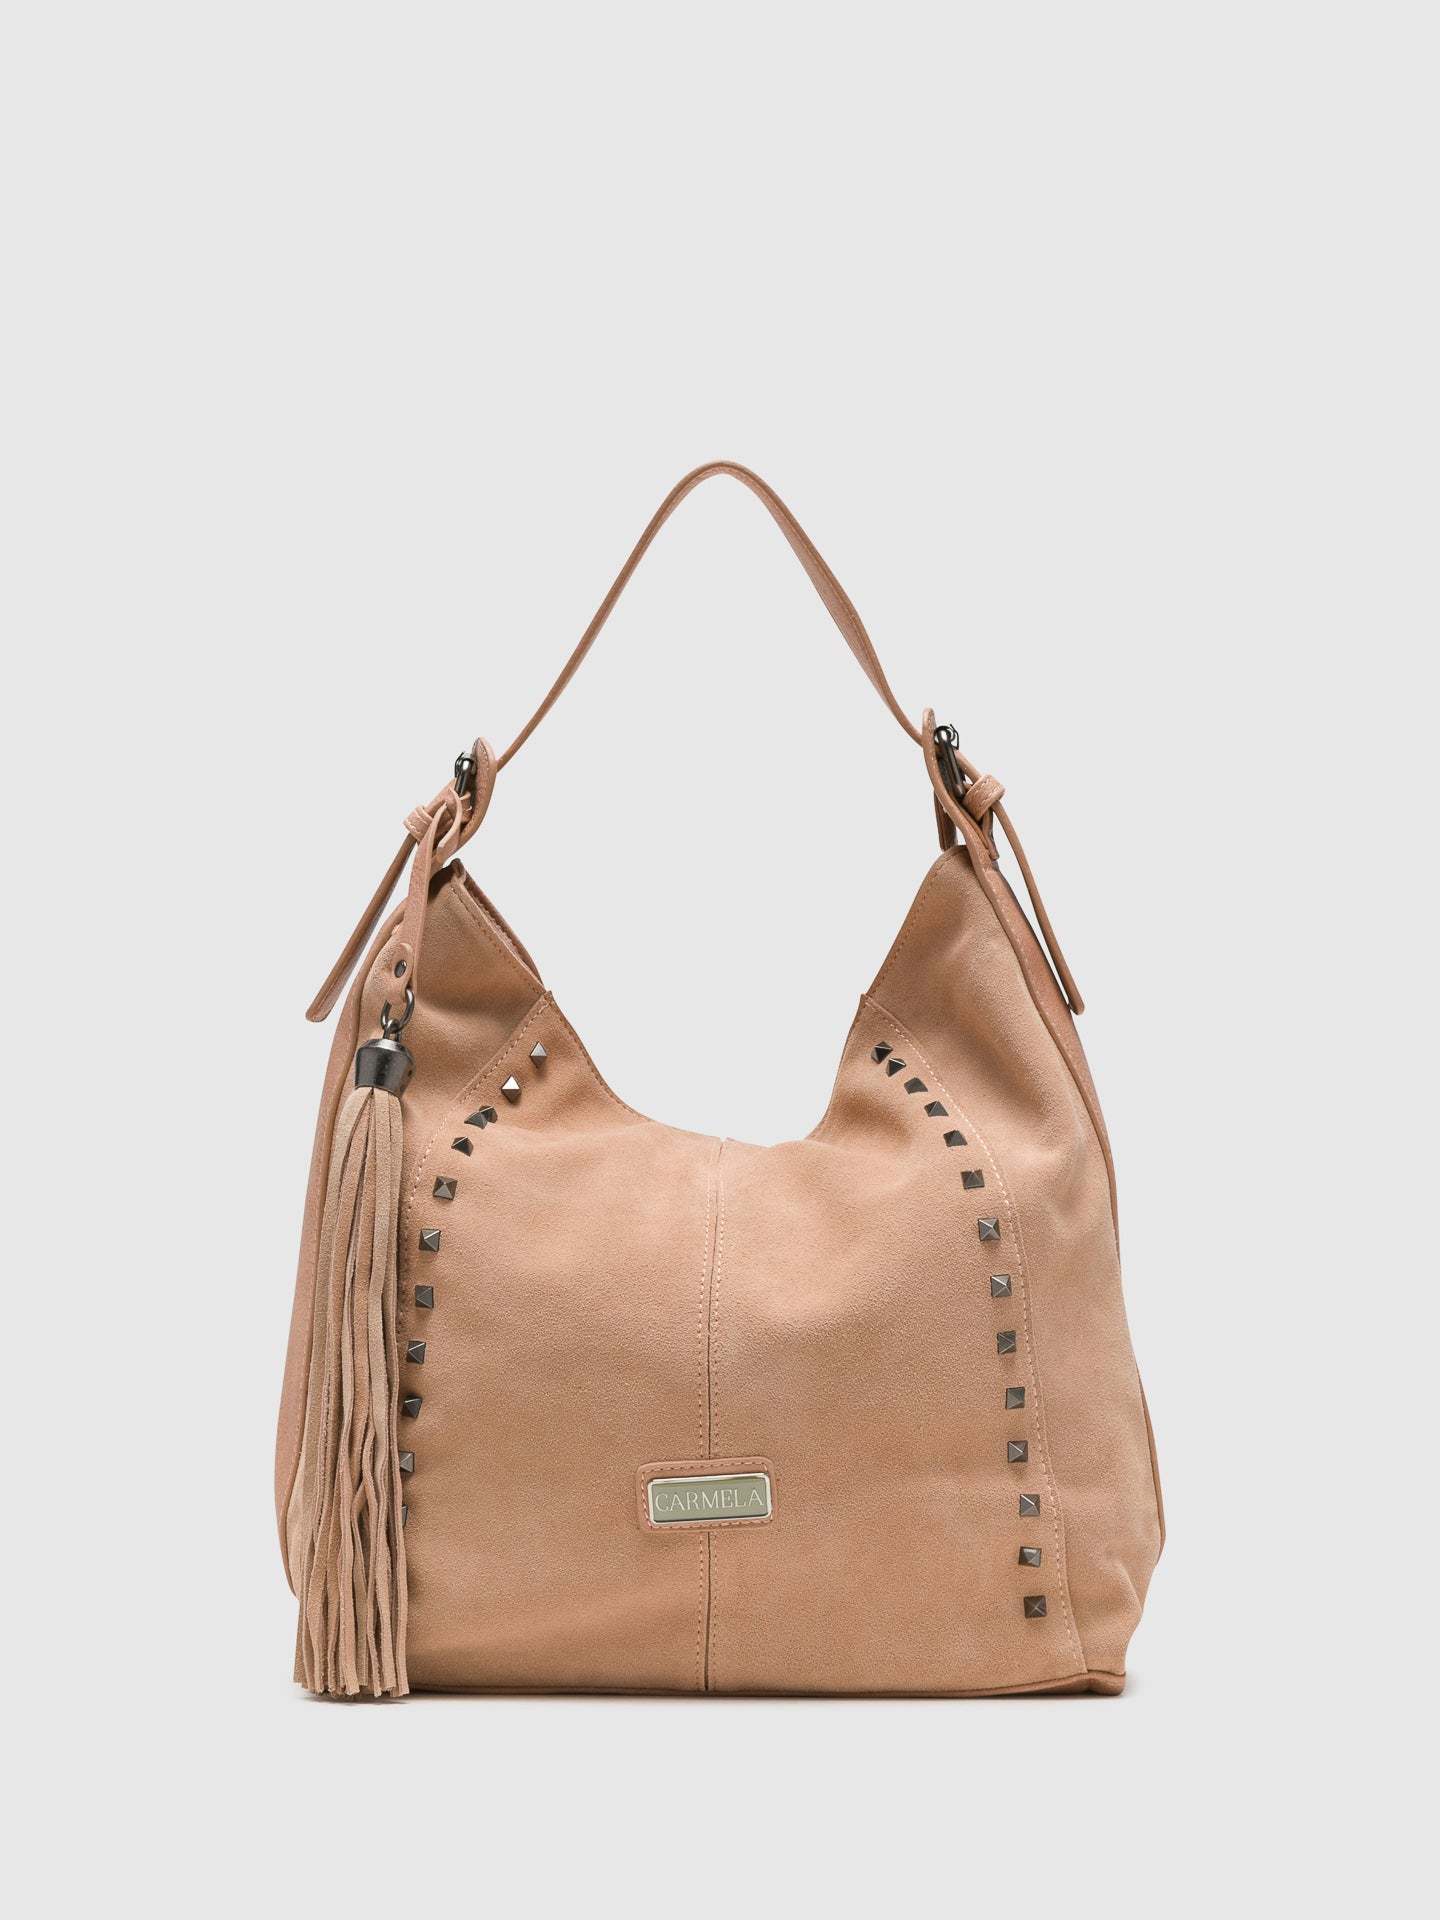 Carmela Pink Shoulder Bag